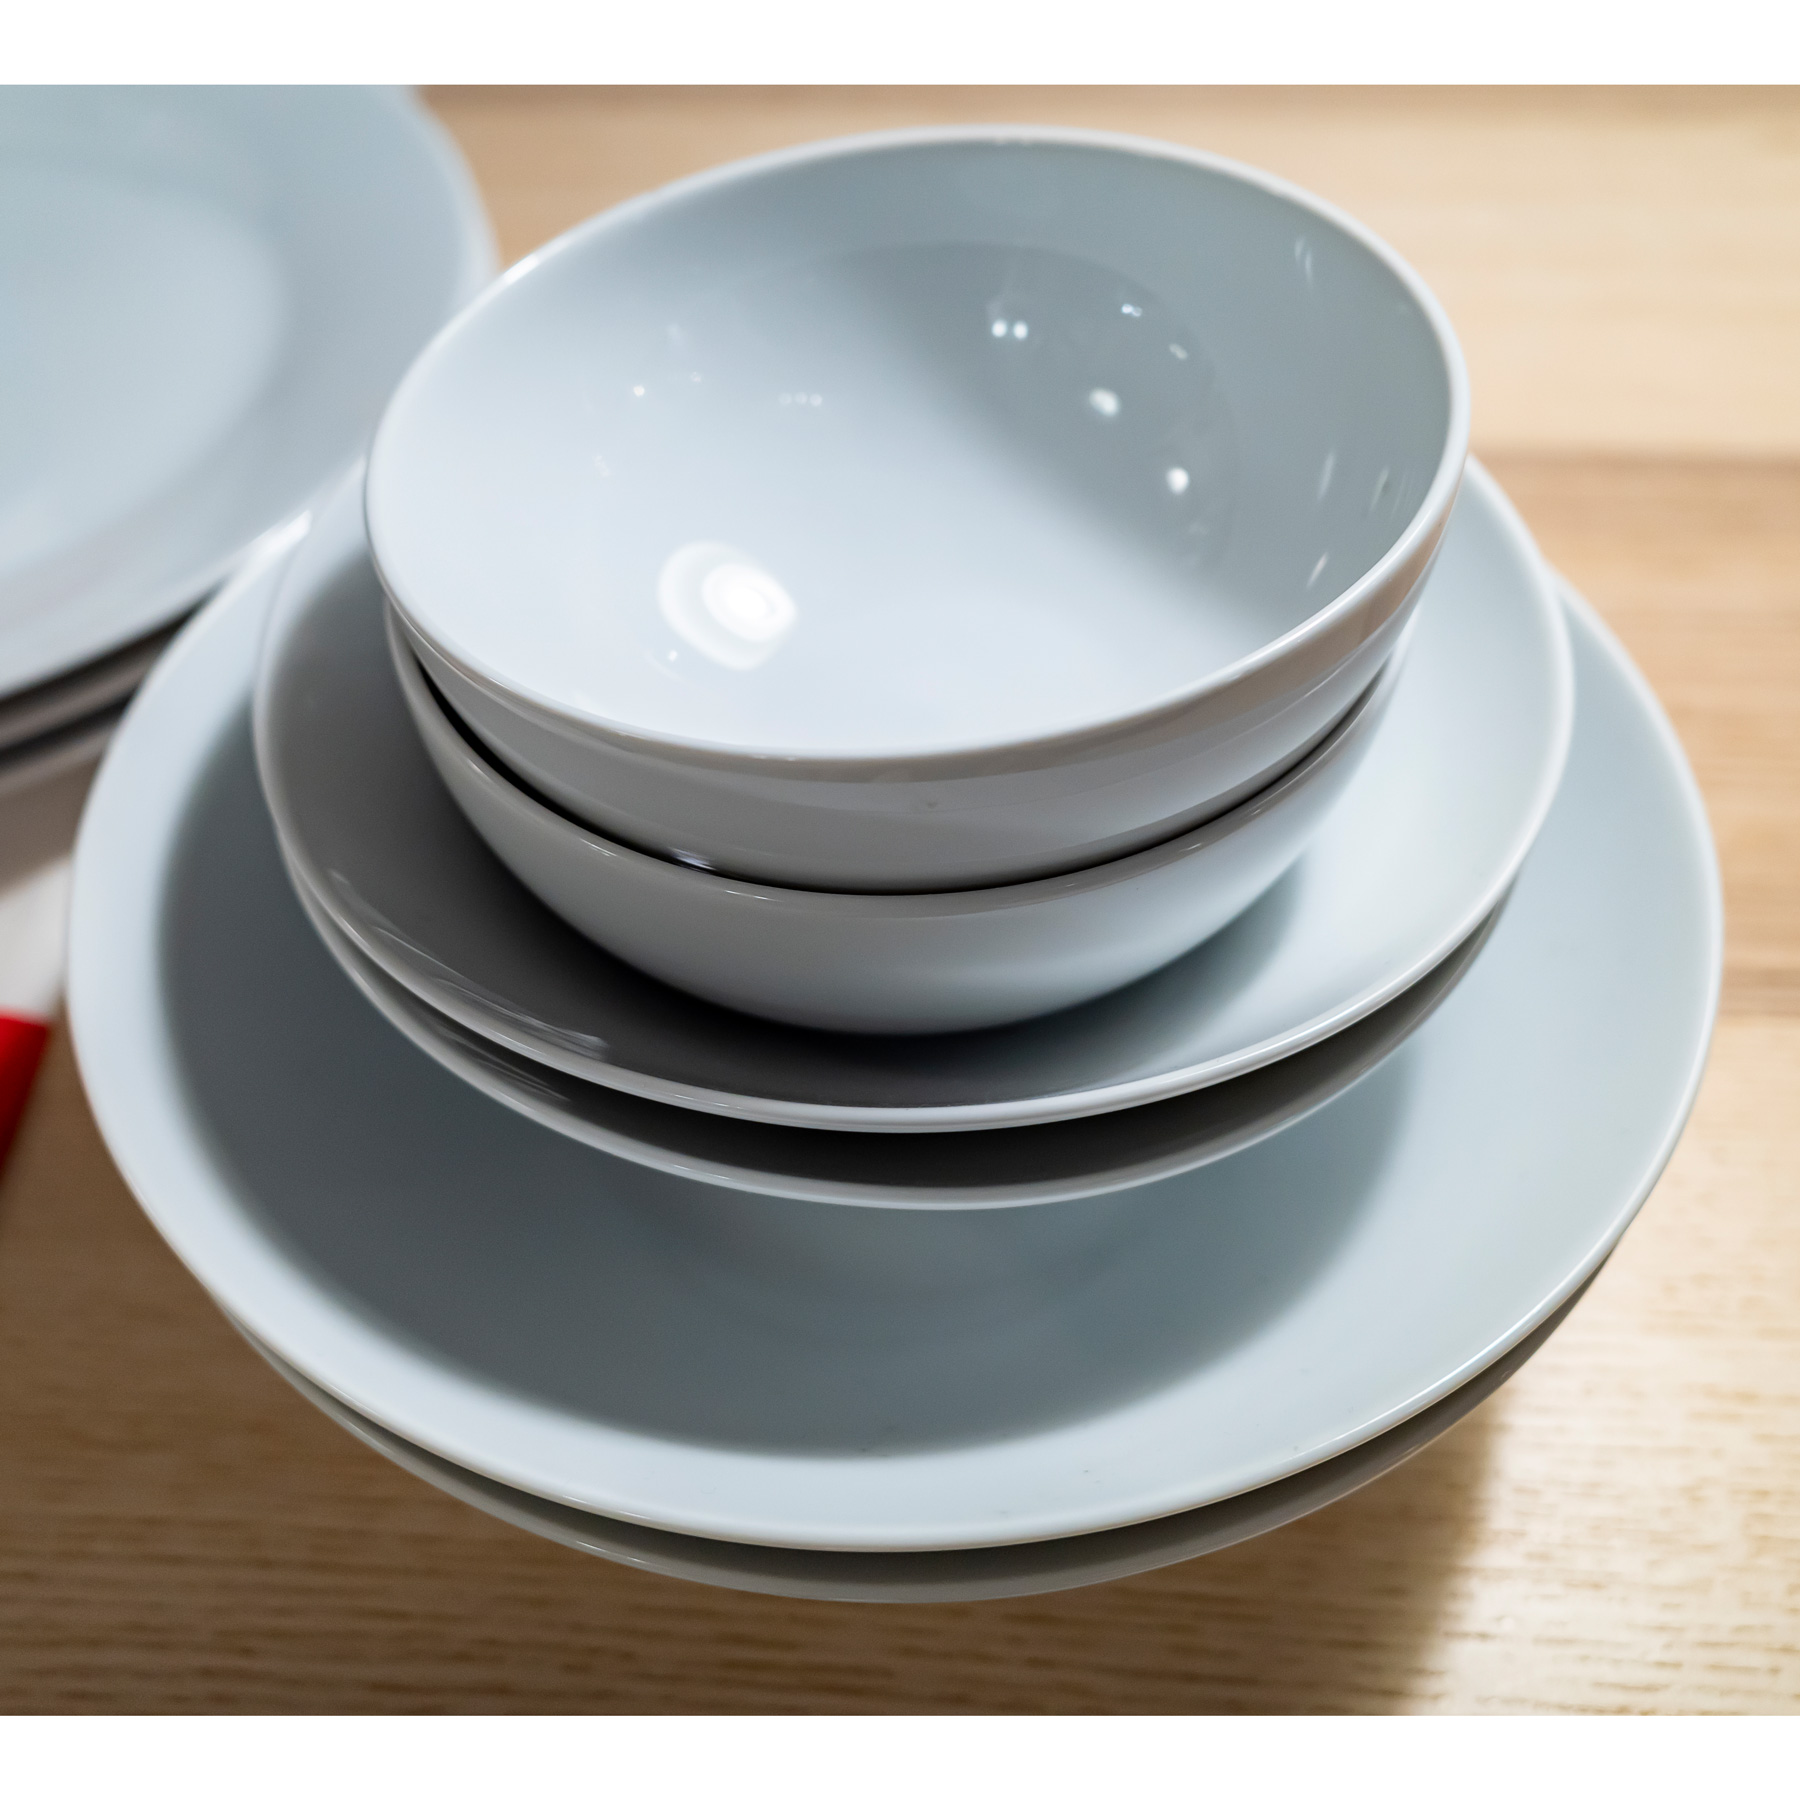 10 Ways to Make Your Home Greener: stack of ceramic bowls to microwave